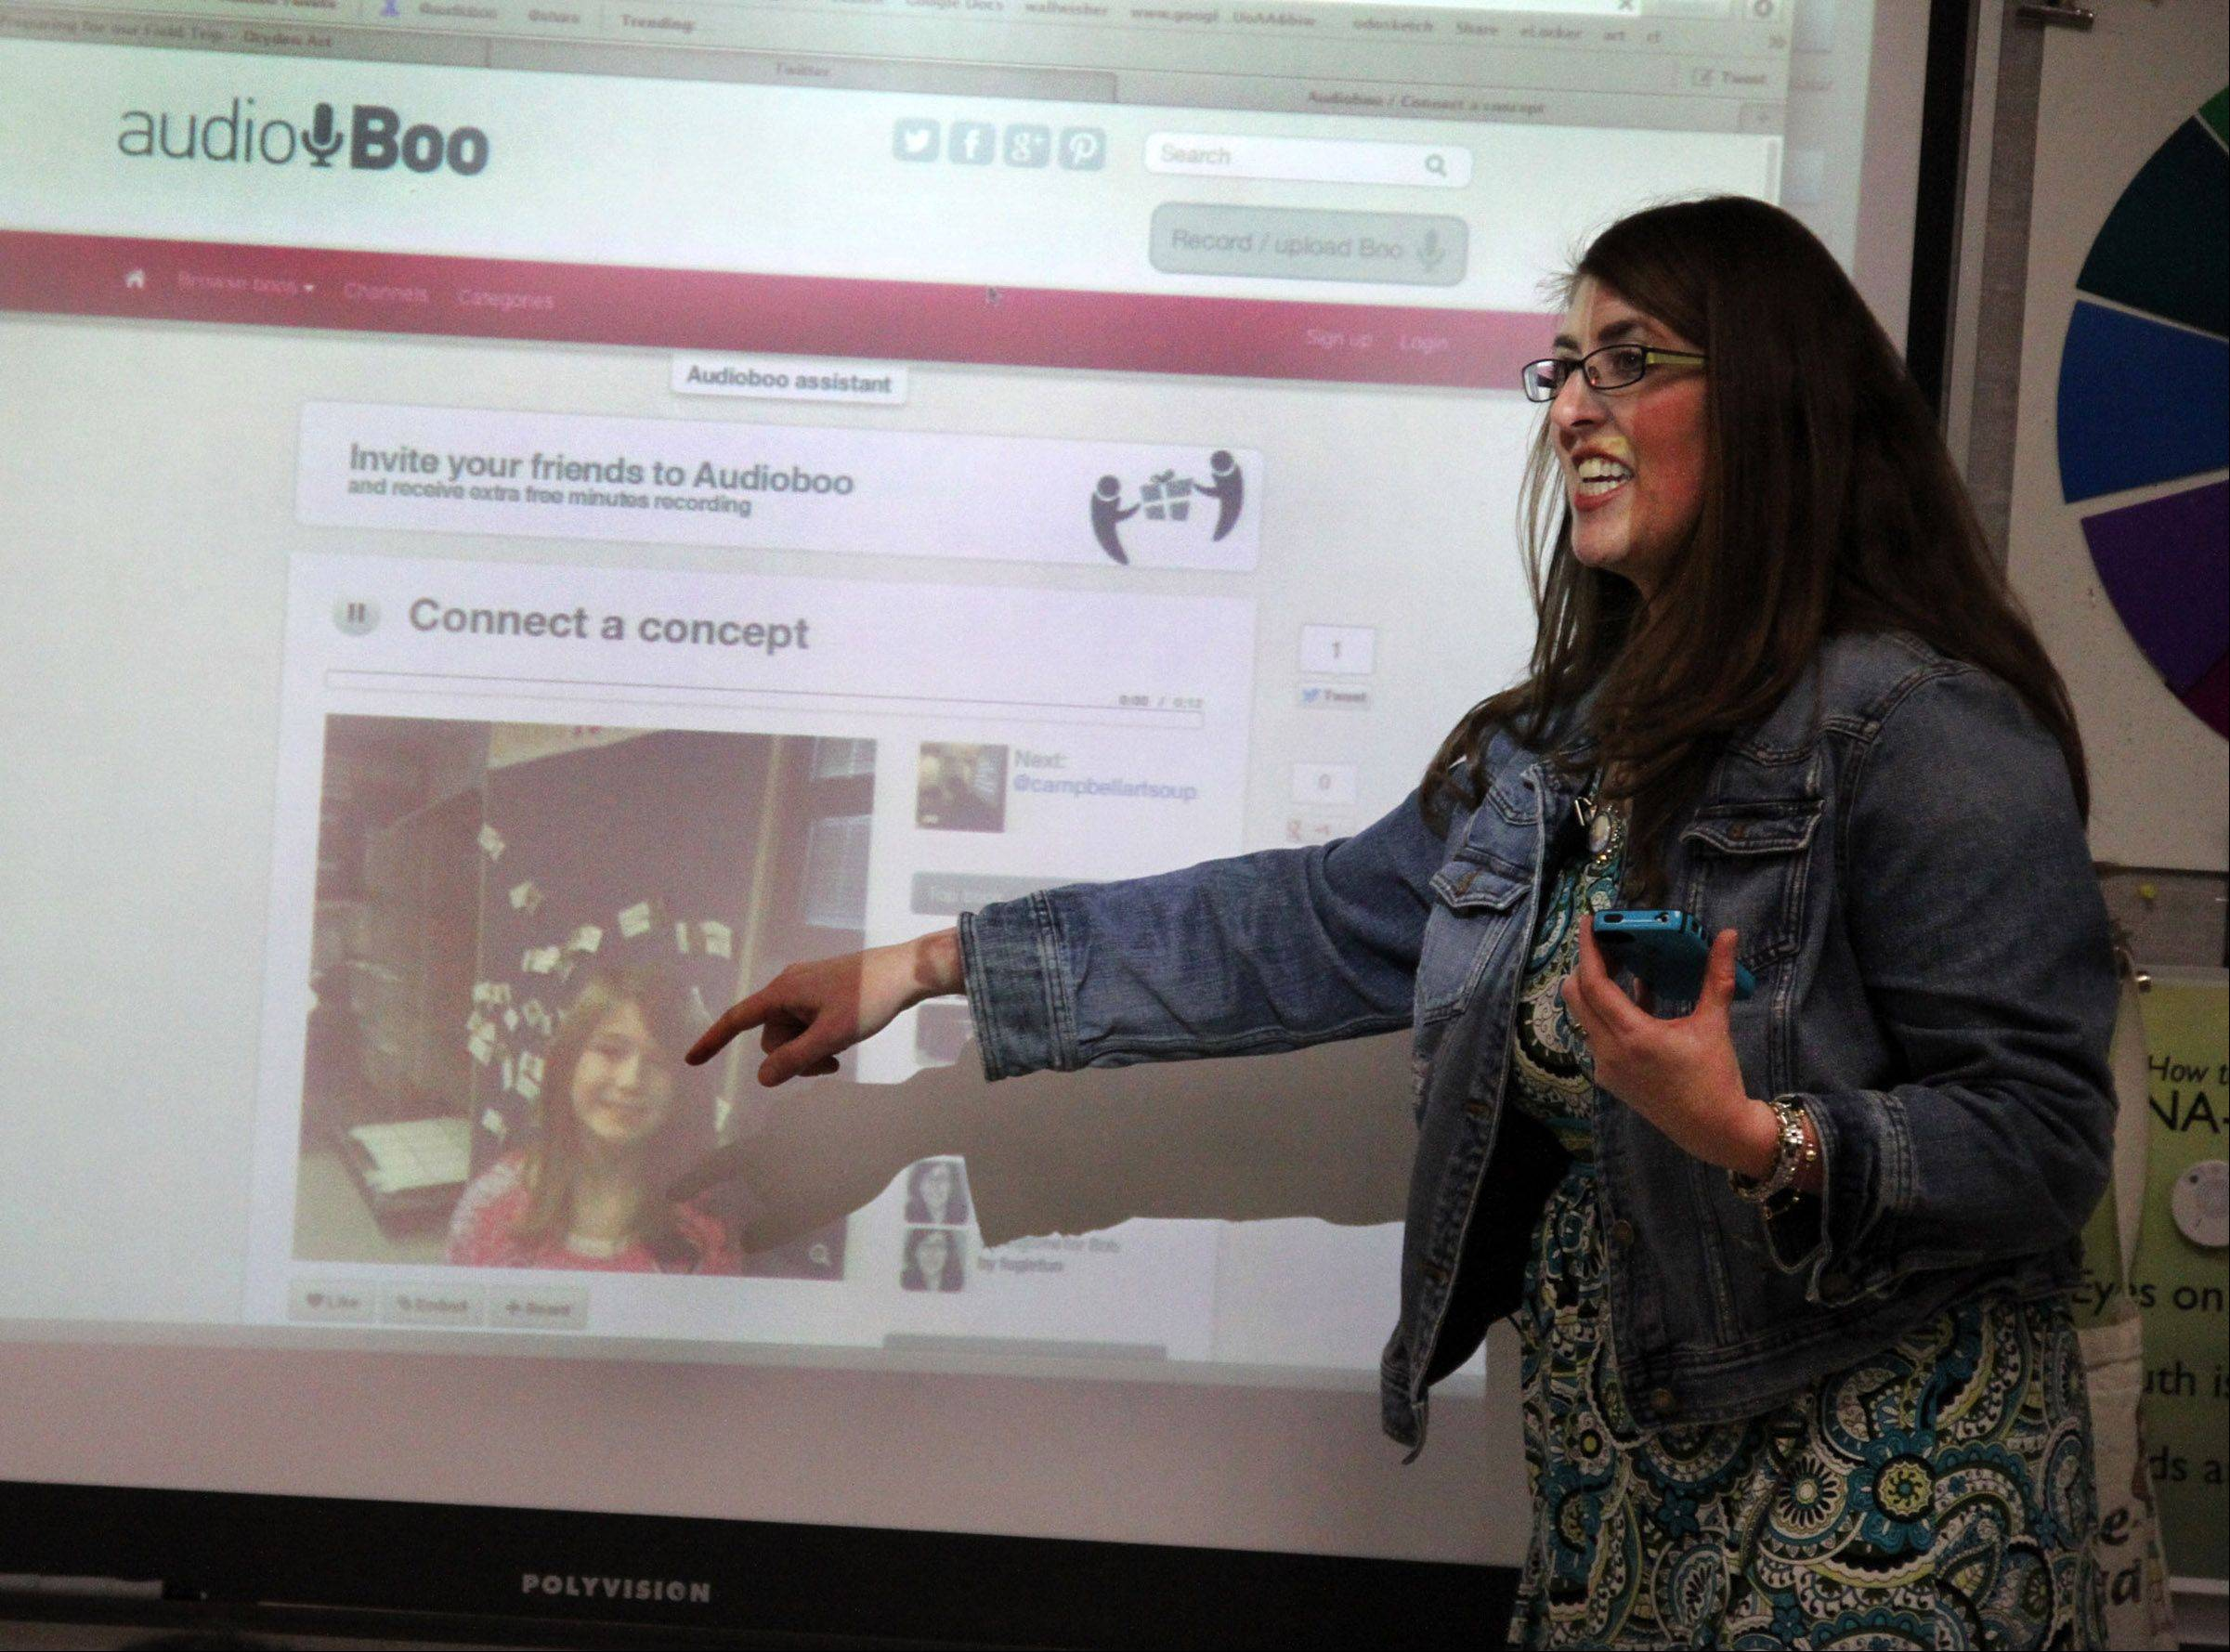 Tricia Fuglestad demonstrates how she used the Audioboo app to post the photo and audio of Grace Terry.